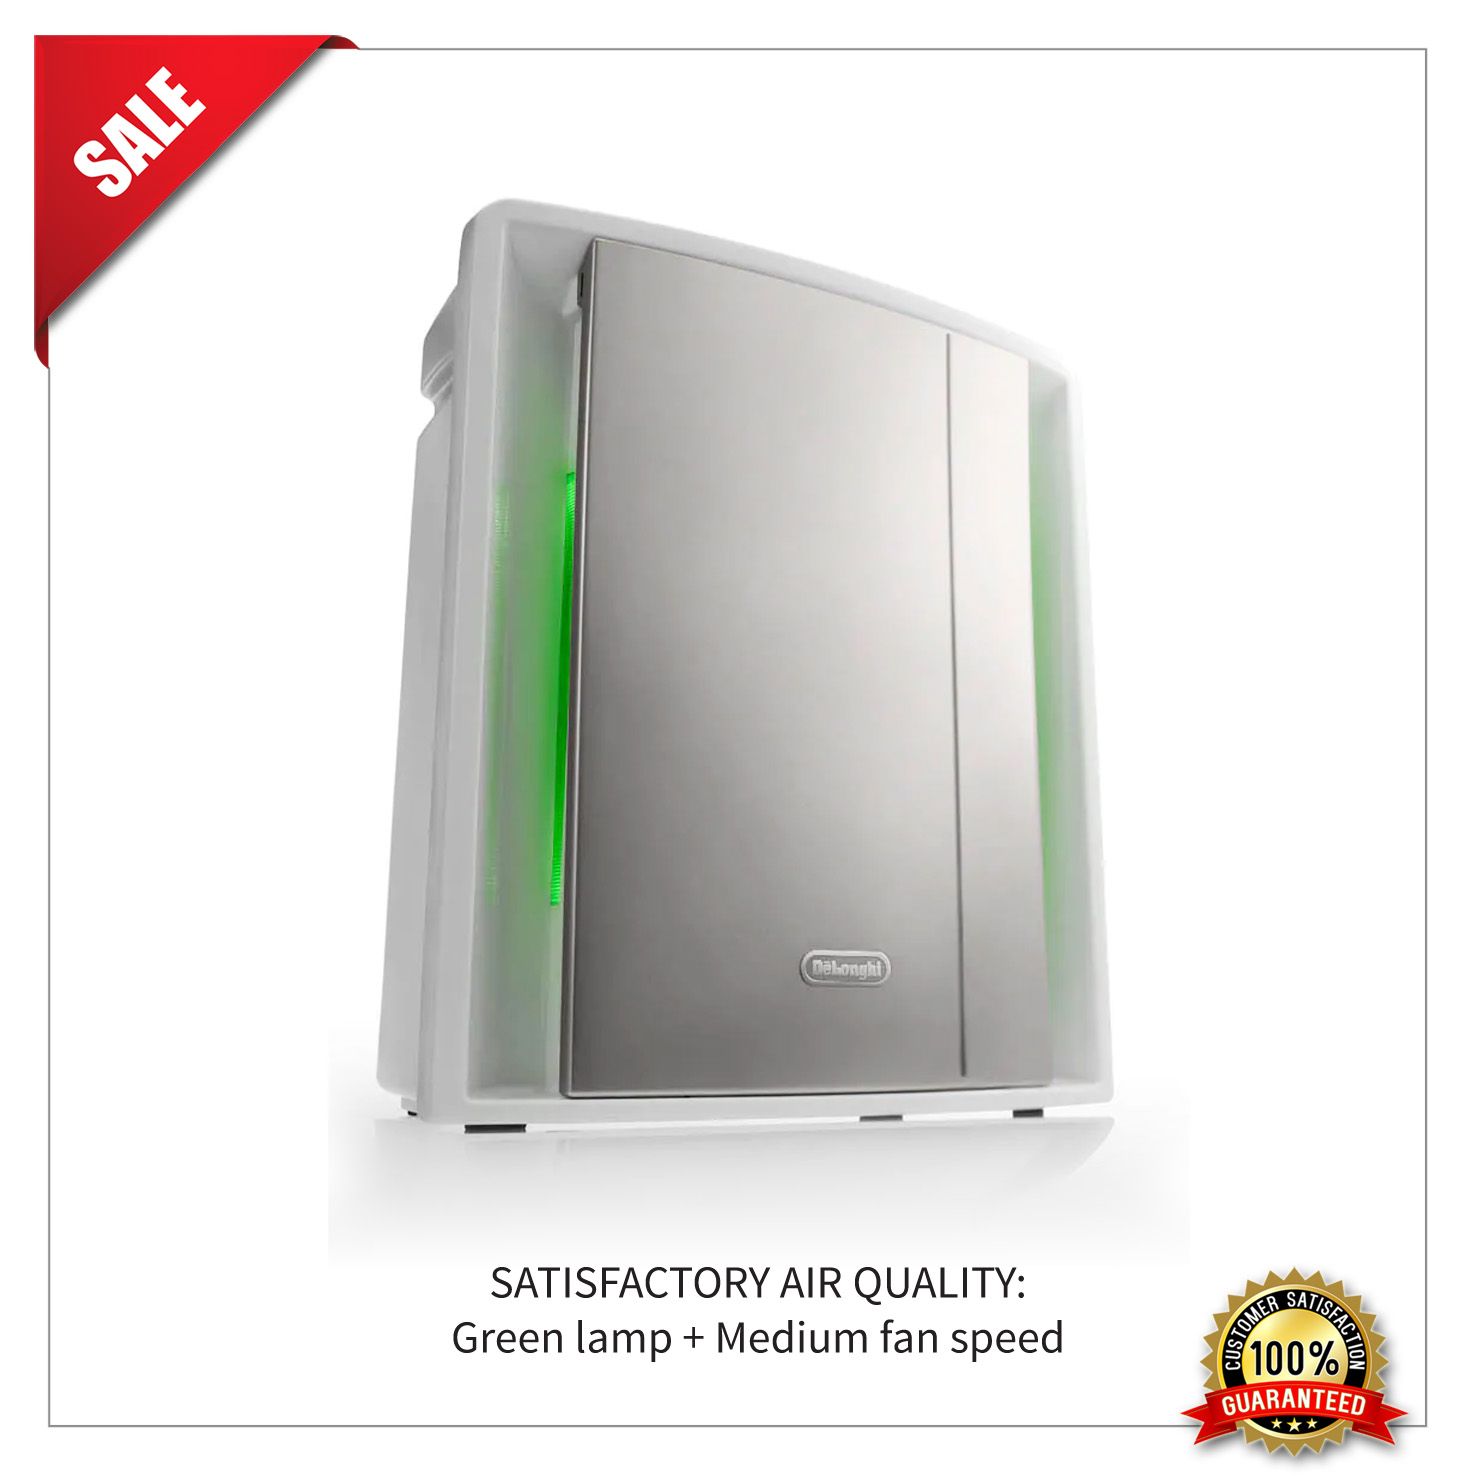 PRODUCT PROFILE 4 – AC 230 green